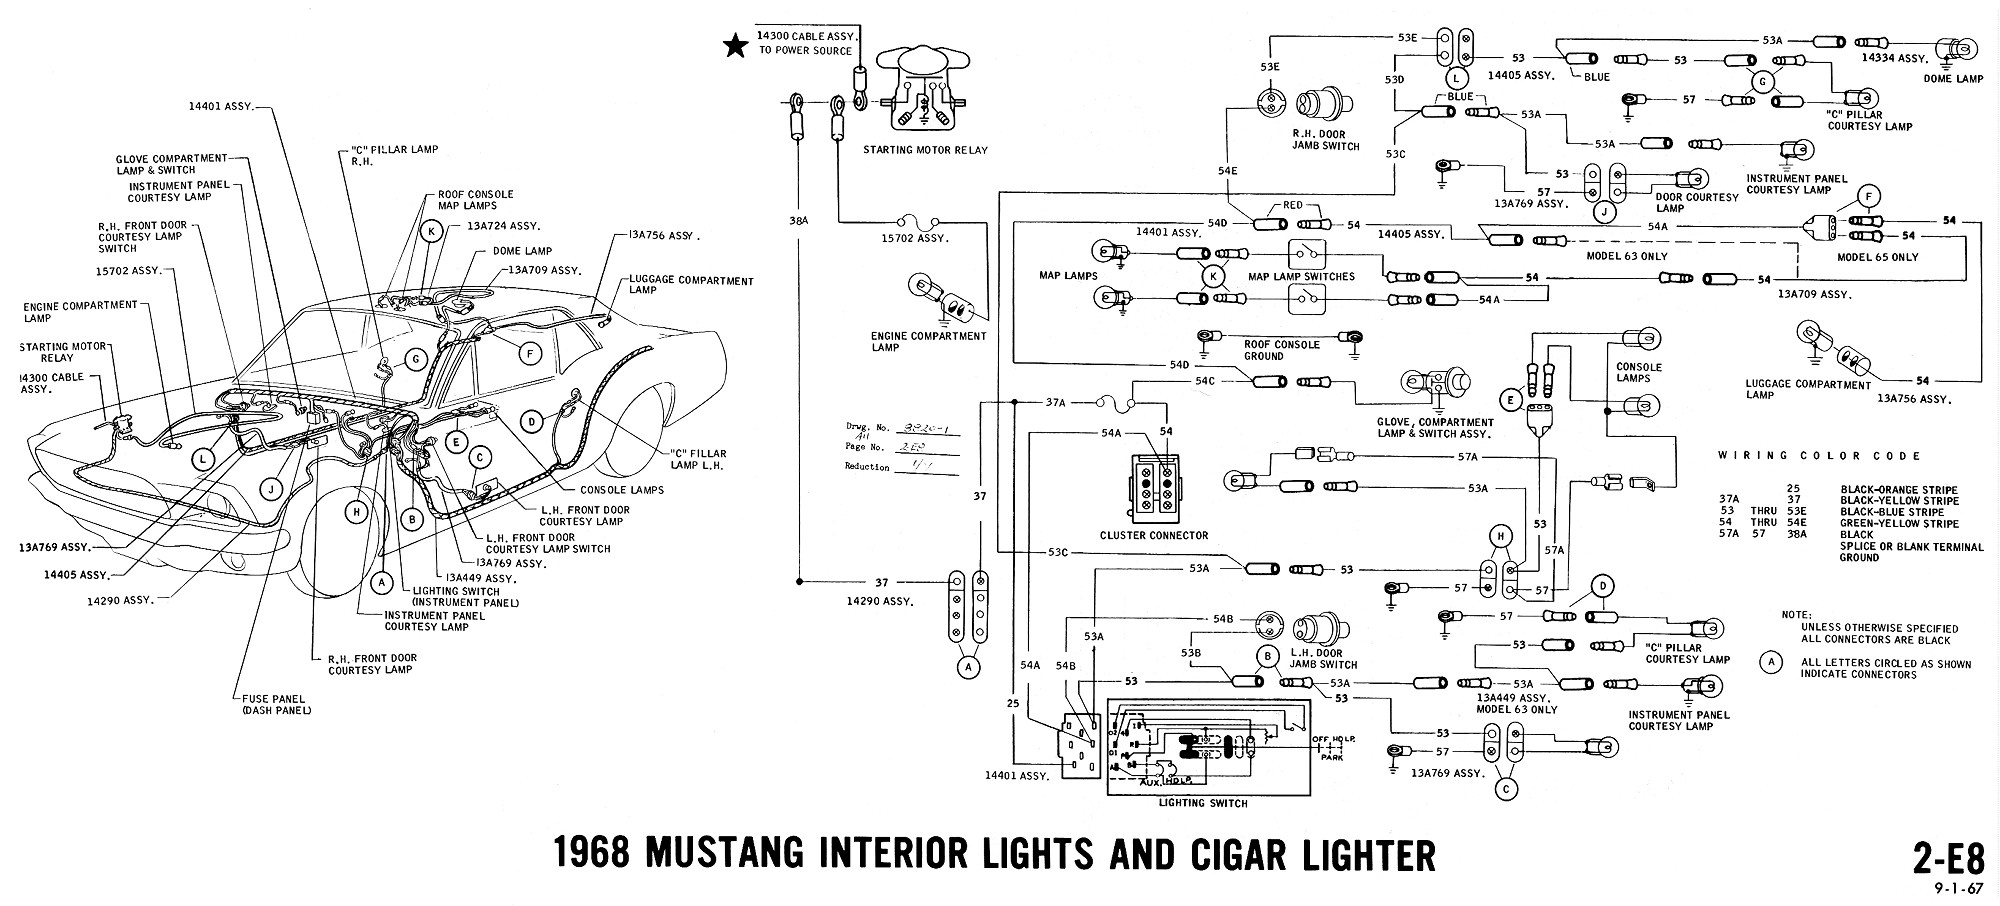 1968 mustang wiring diagram example electrical wiring diagram u2022 rh cranejapan co Horn Electrical Wiring Installation Dixie Horn Wiring Diagram